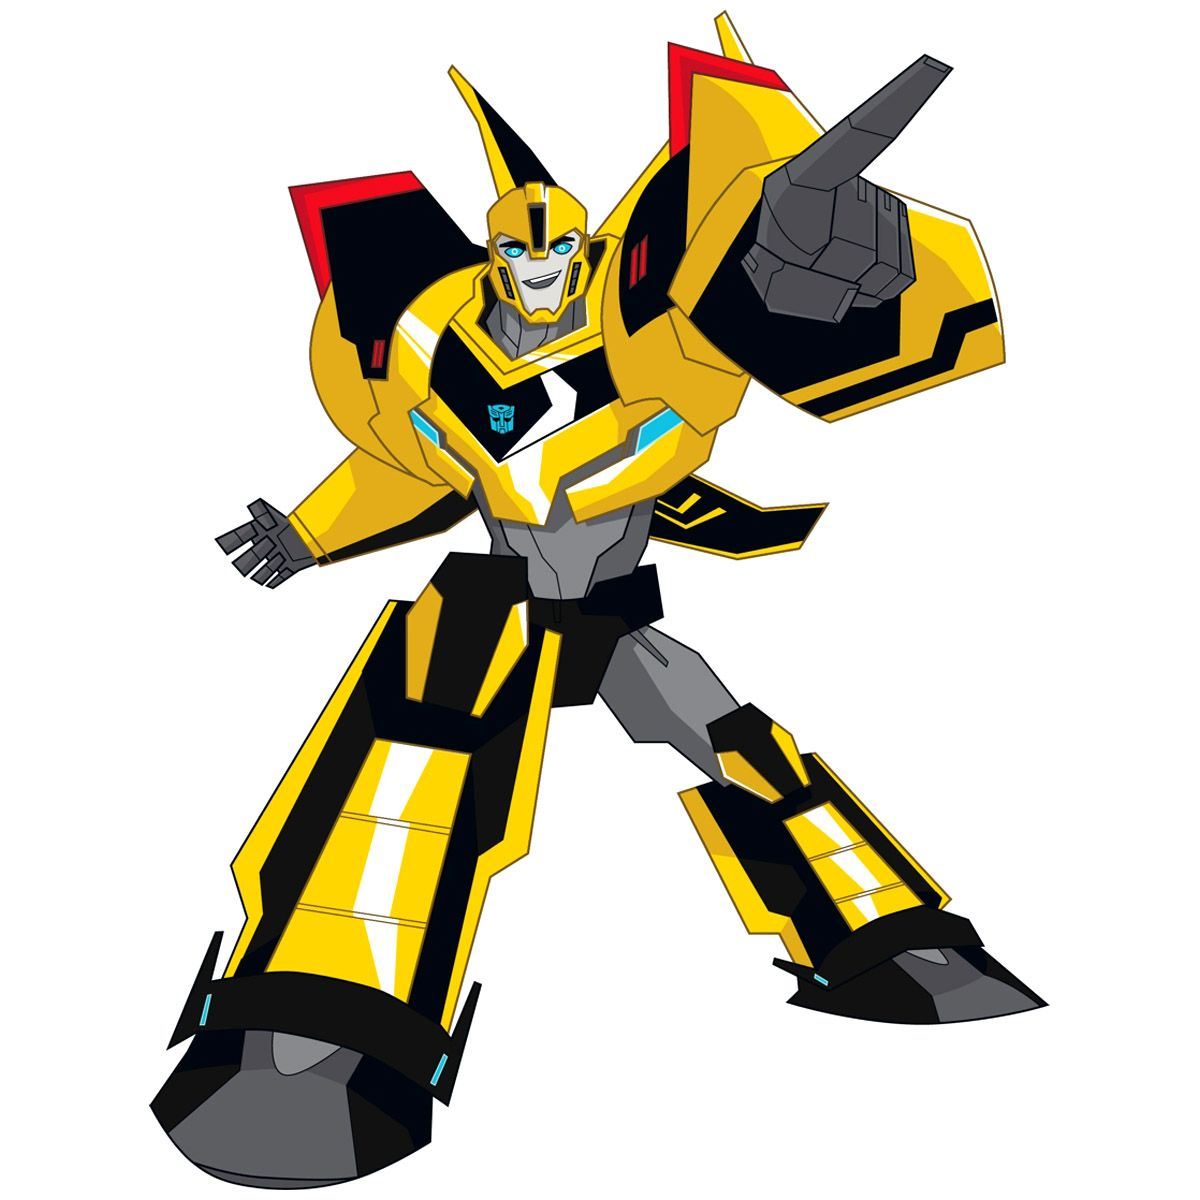 transformers-2015-bumblebee-animated Thanks to The Hub, we have our ...